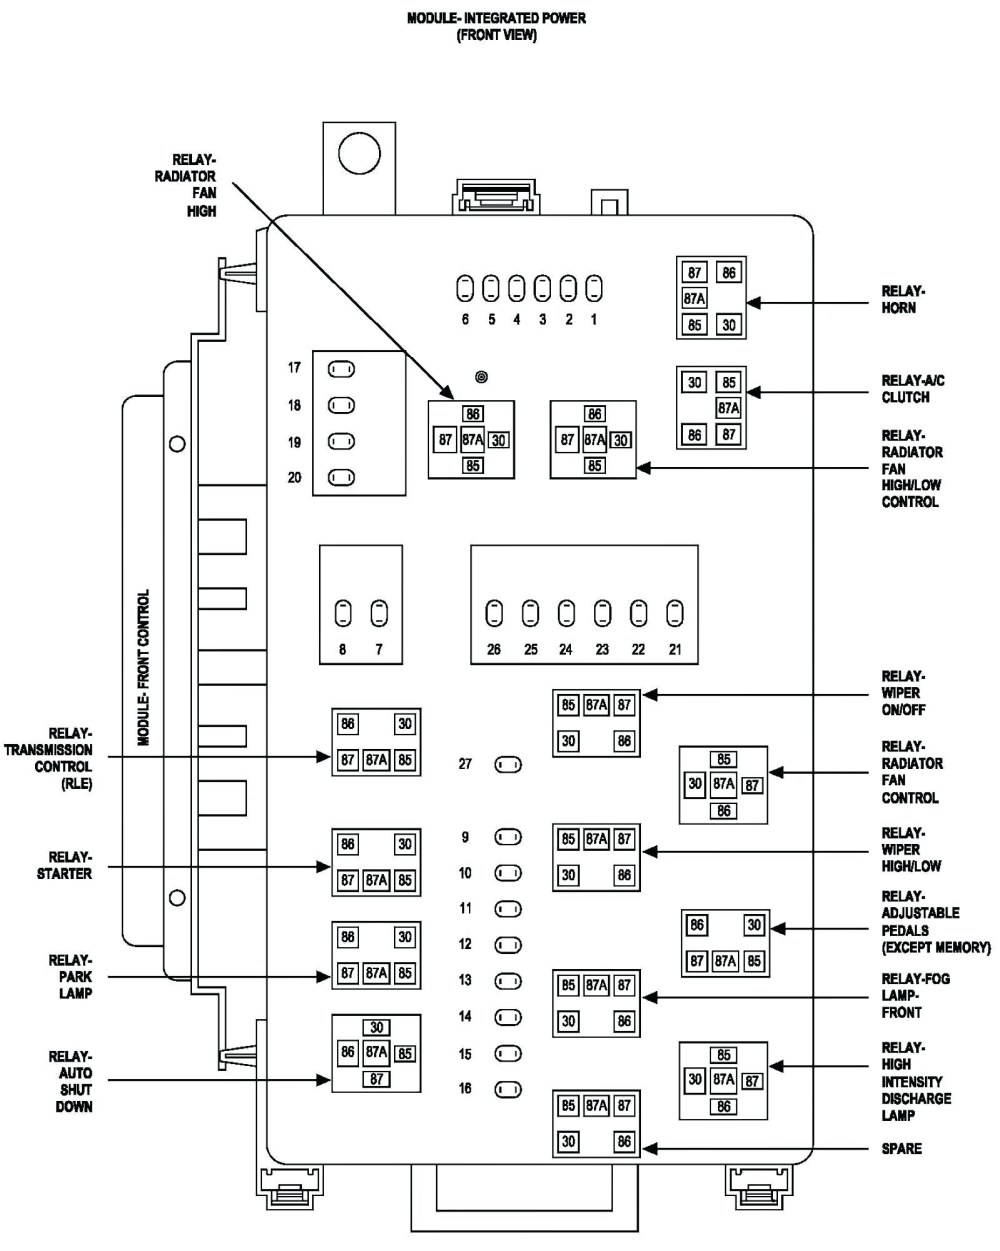 medium resolution of 2006 suzuki xl7 engine diagram wiring diagram sqfuse box location 2007 suzuki xl7 wiring diagrams lol